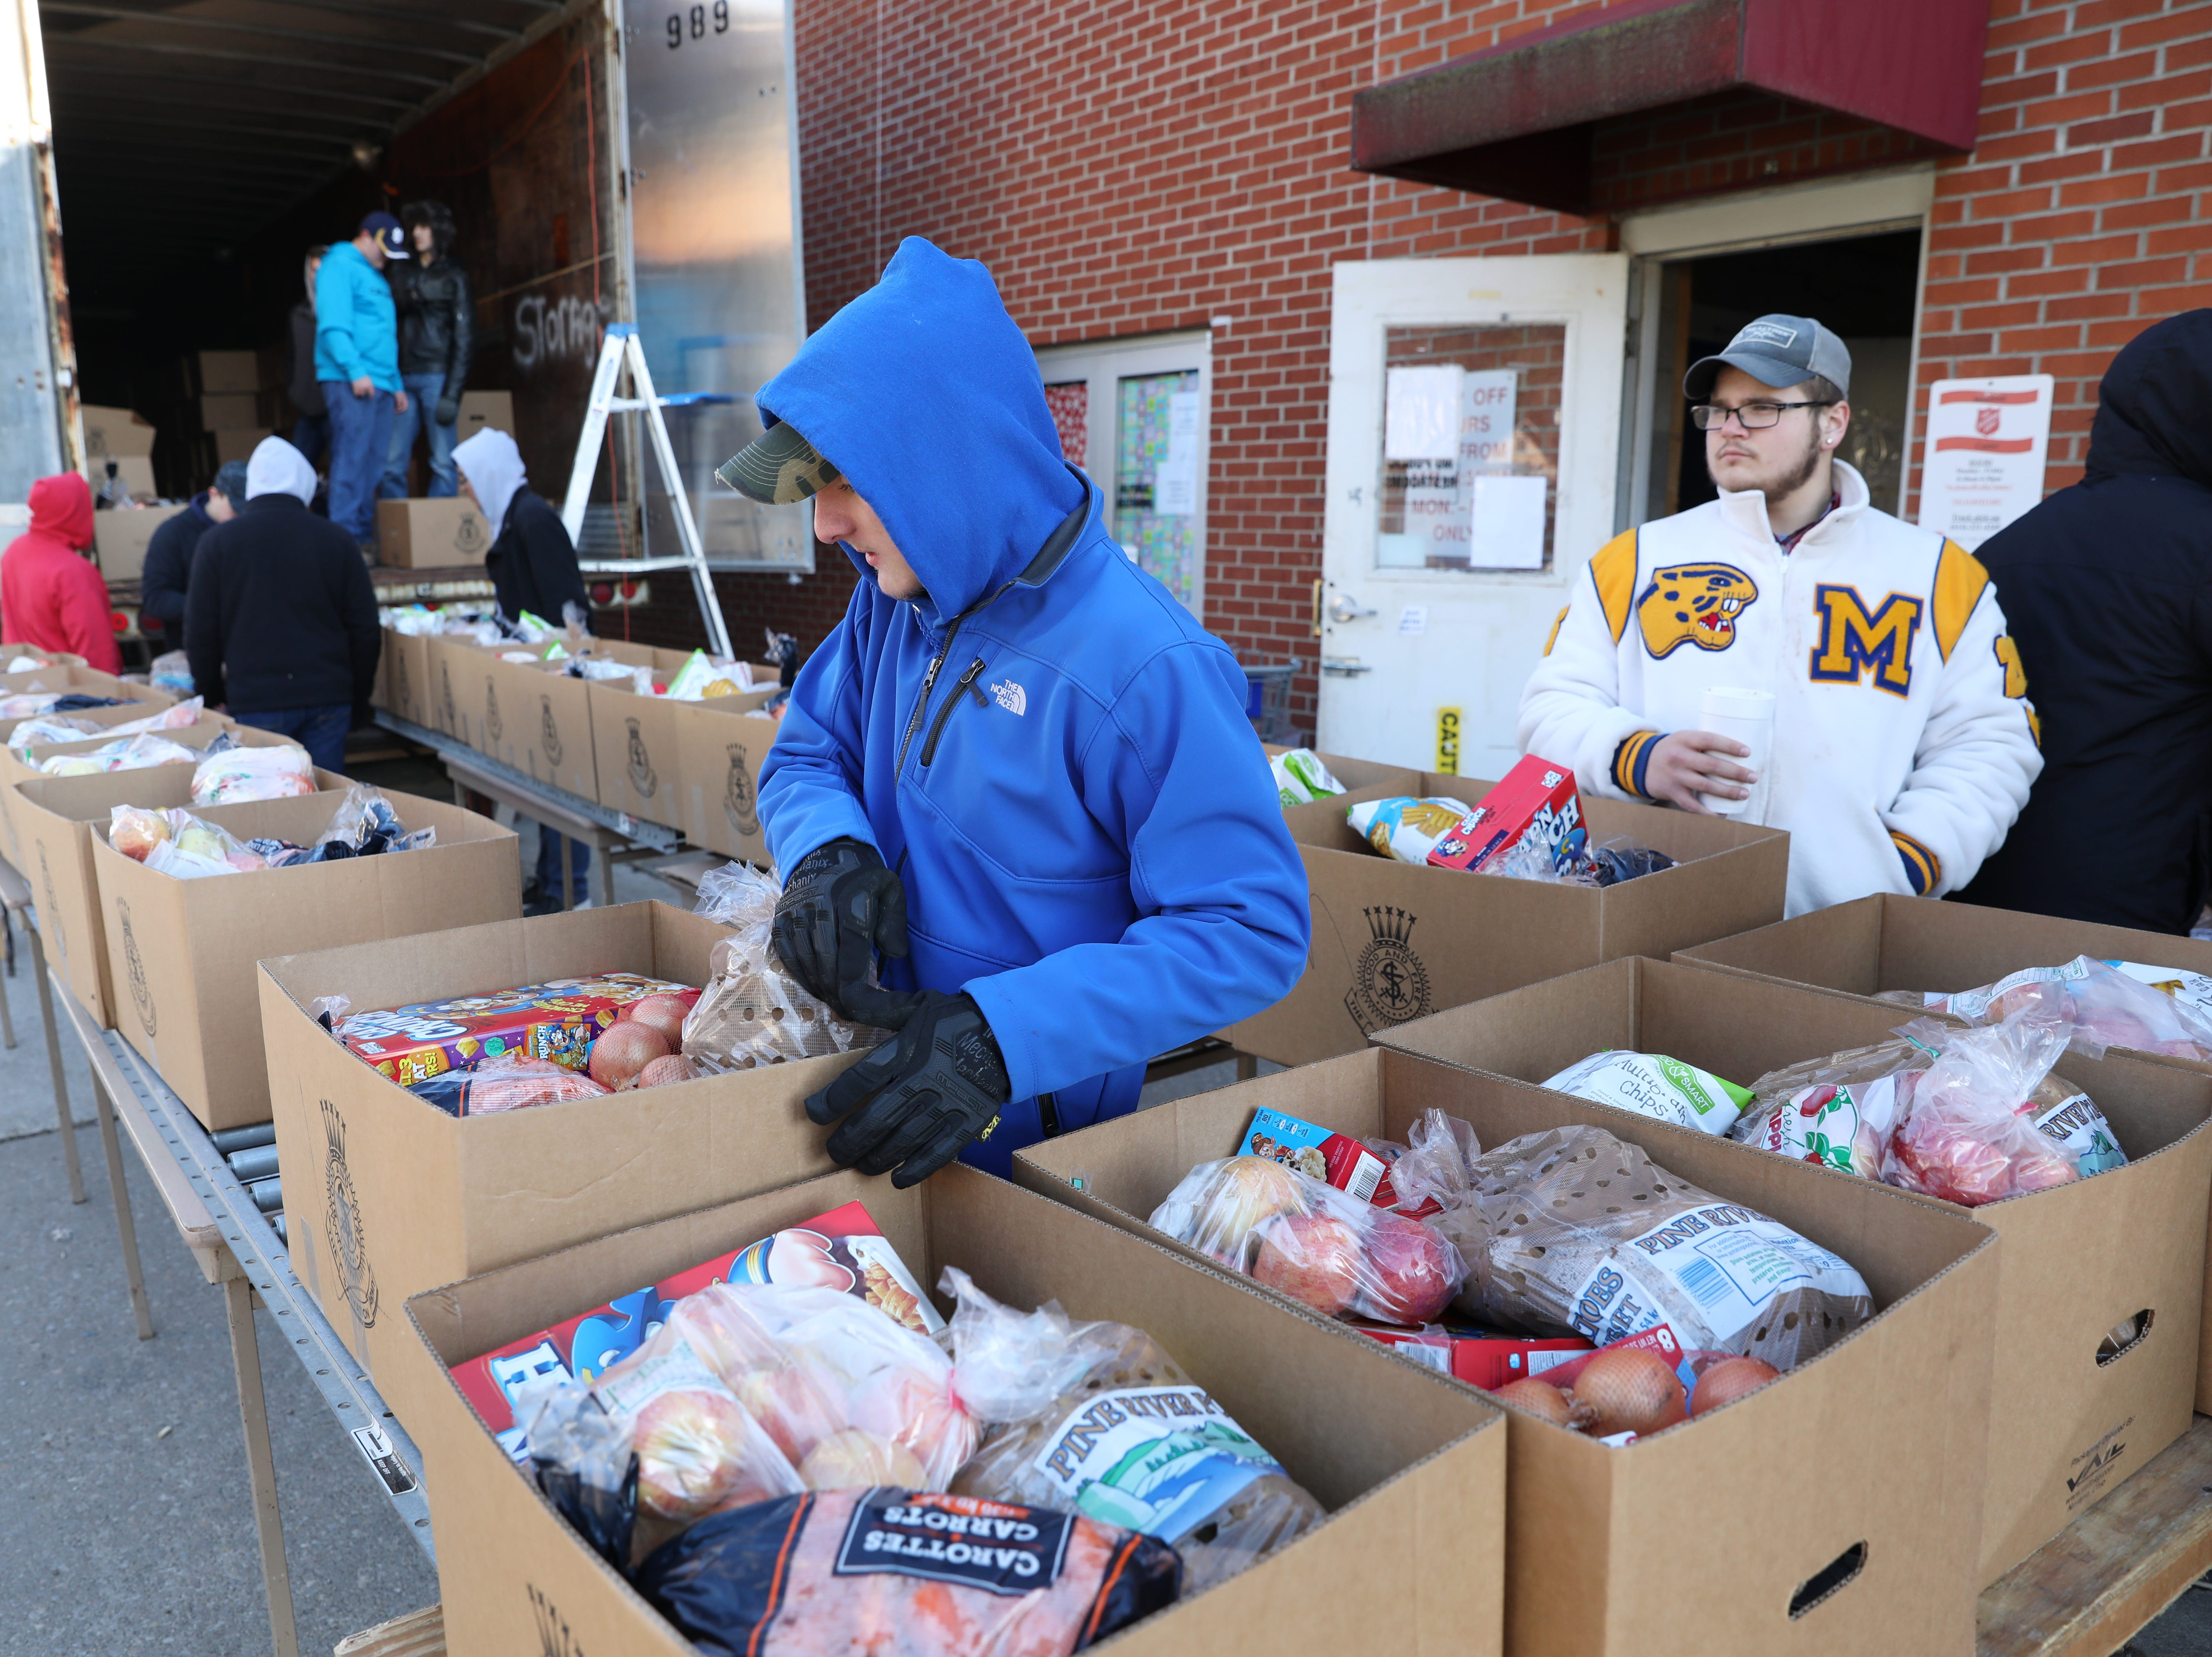 Maysville High School football player Kayon Zinn moves boxes of food while volunteering at the Salvation Army on Tuesday.